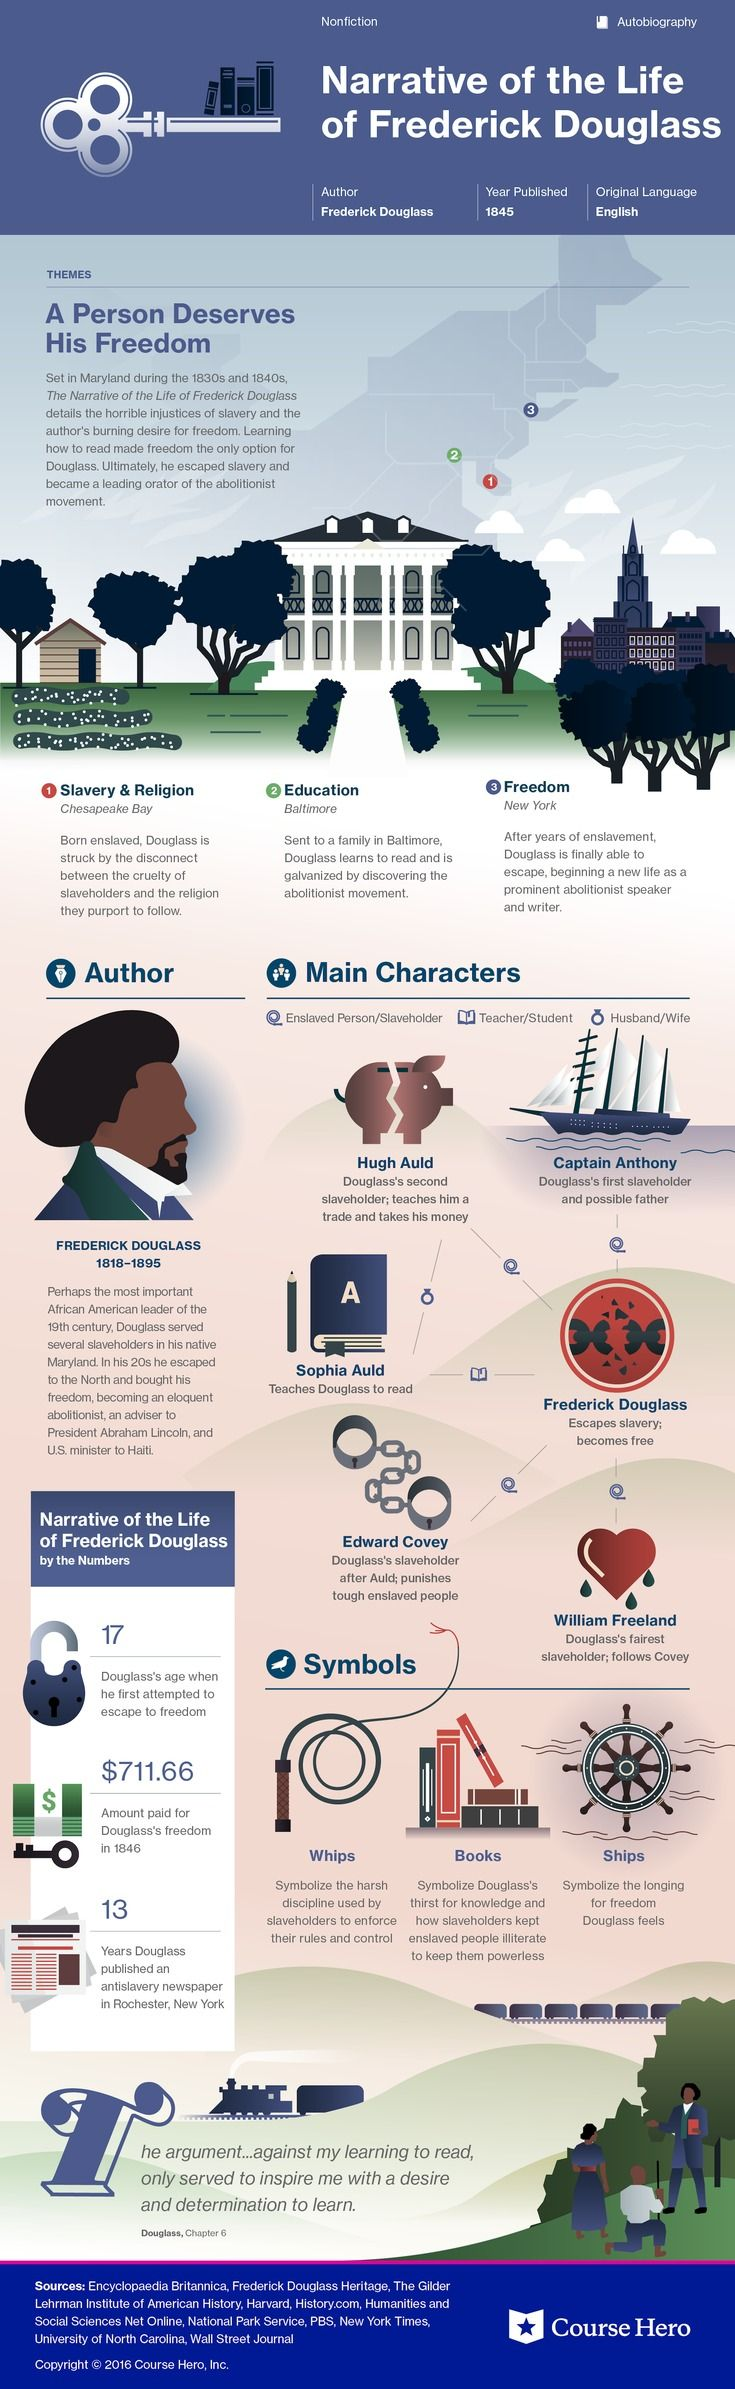 best ideas about frederick douglass narrative this coursehero infographic on narrative of the life of frederick douglass is both visually stunning